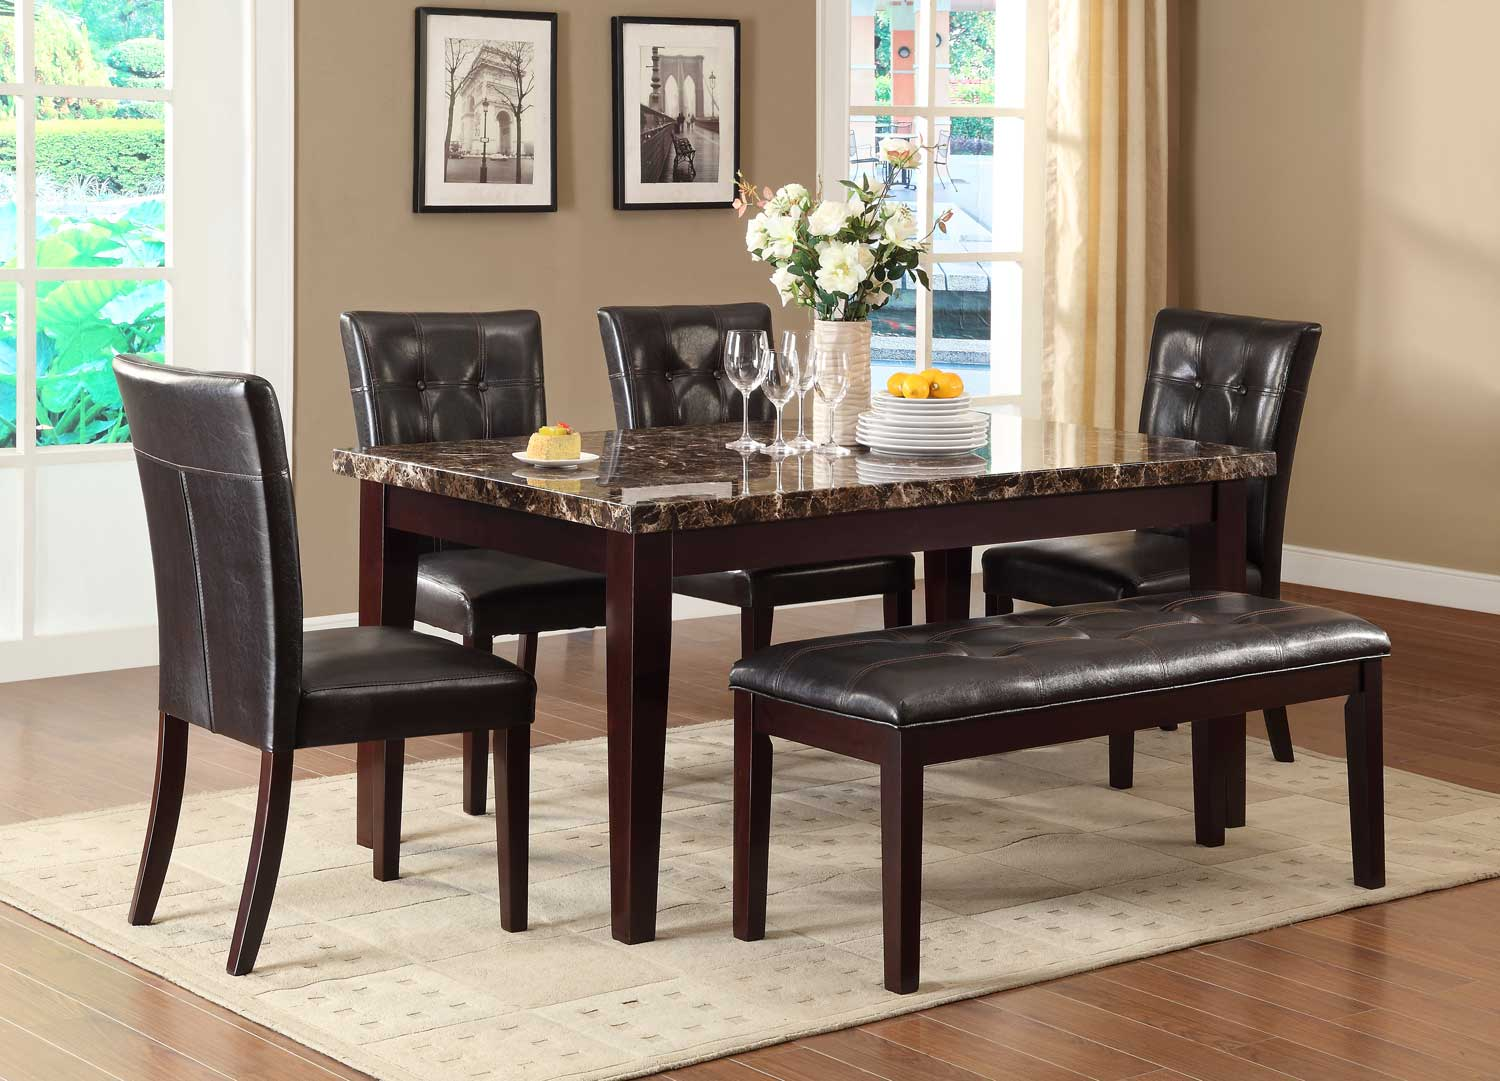 Homelegance Teague Faux Marble Dining Set - Espresso D2544-64 ...